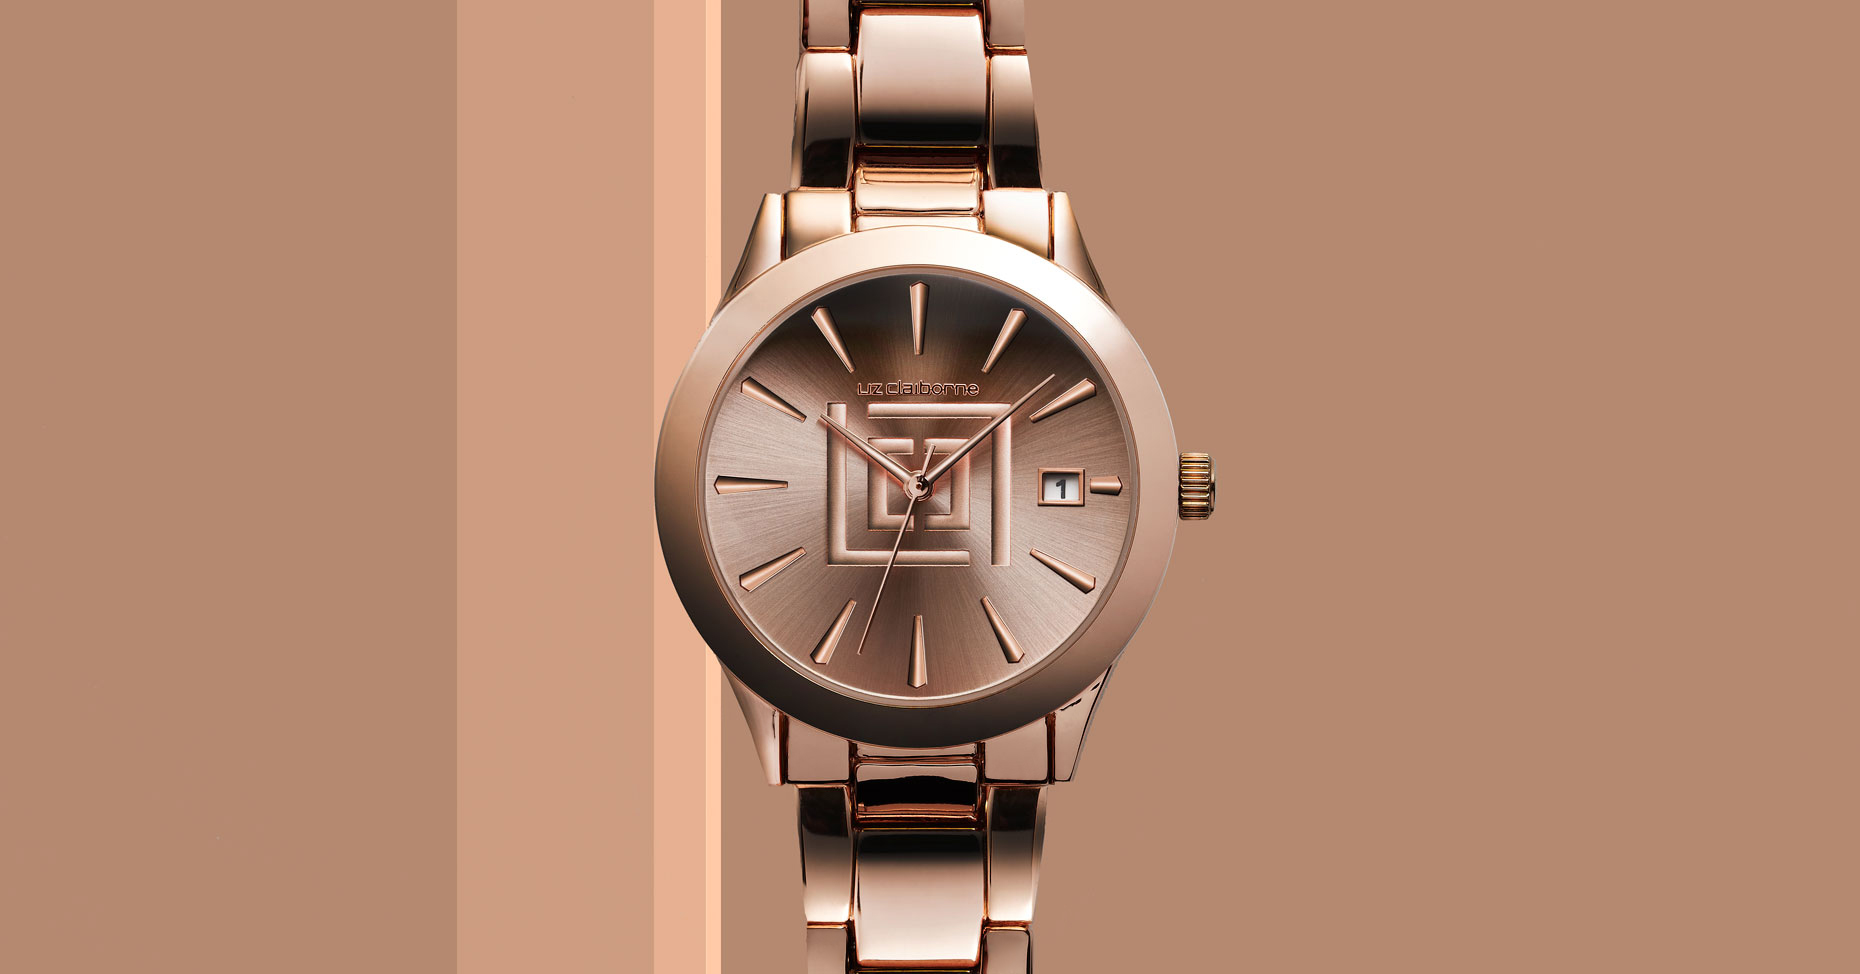 LIZ CLAIBORNE WATCH.jpg